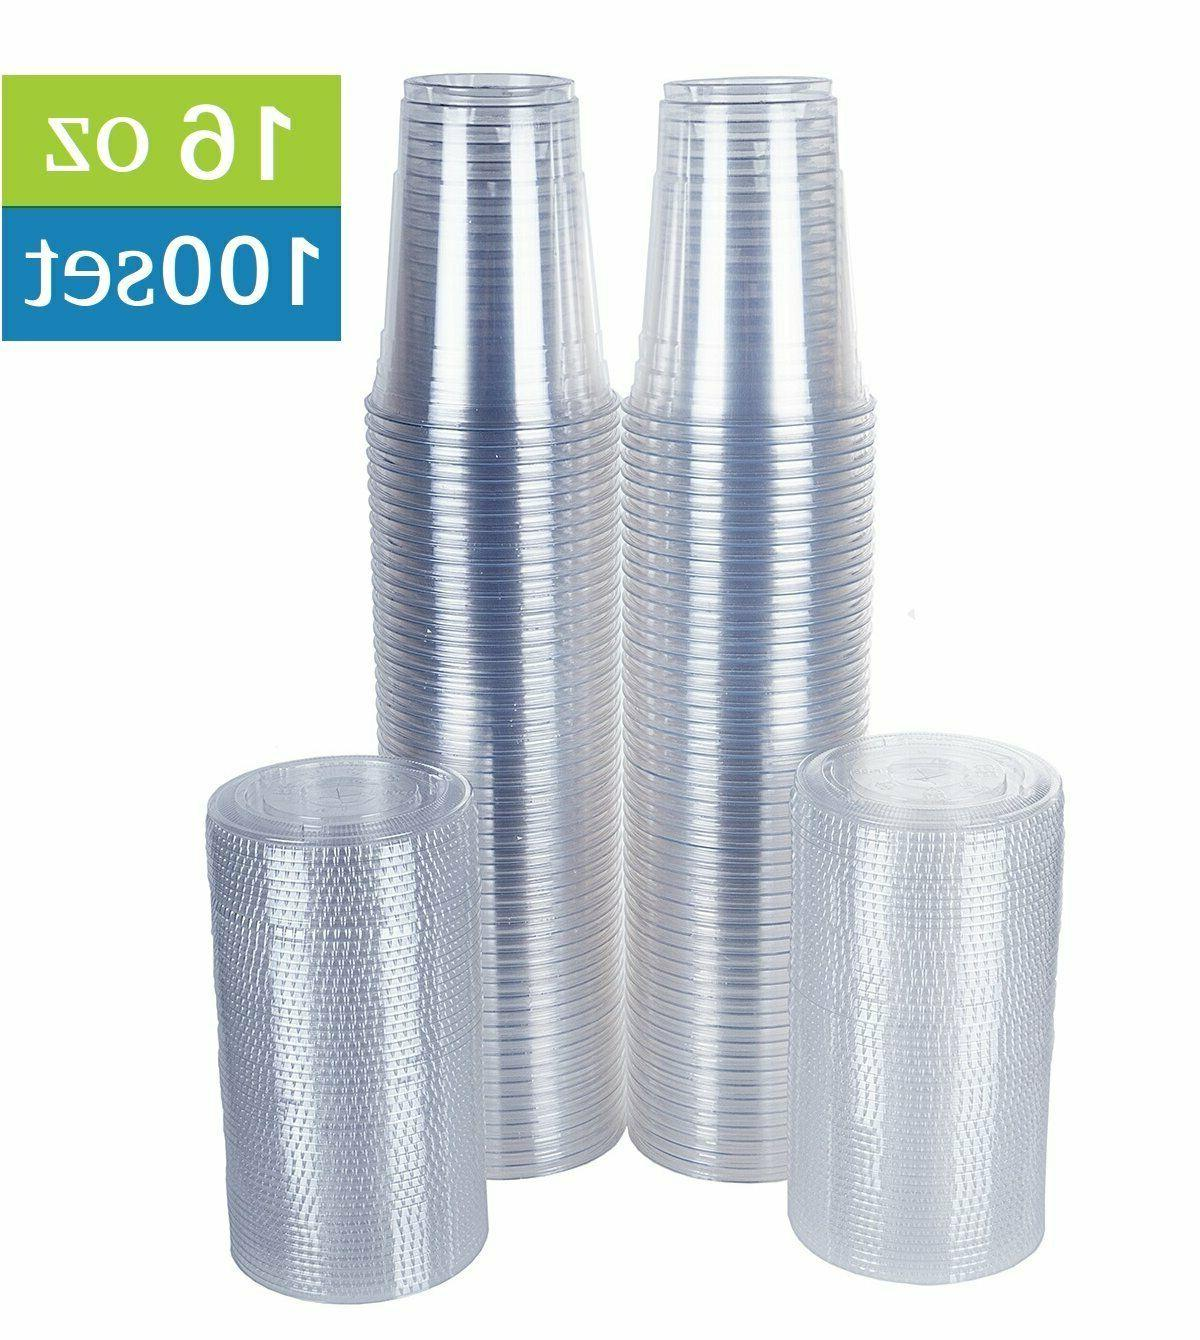 Clear Plastic Cups with Flat Lids 100 Count 16 Ounce Disposa